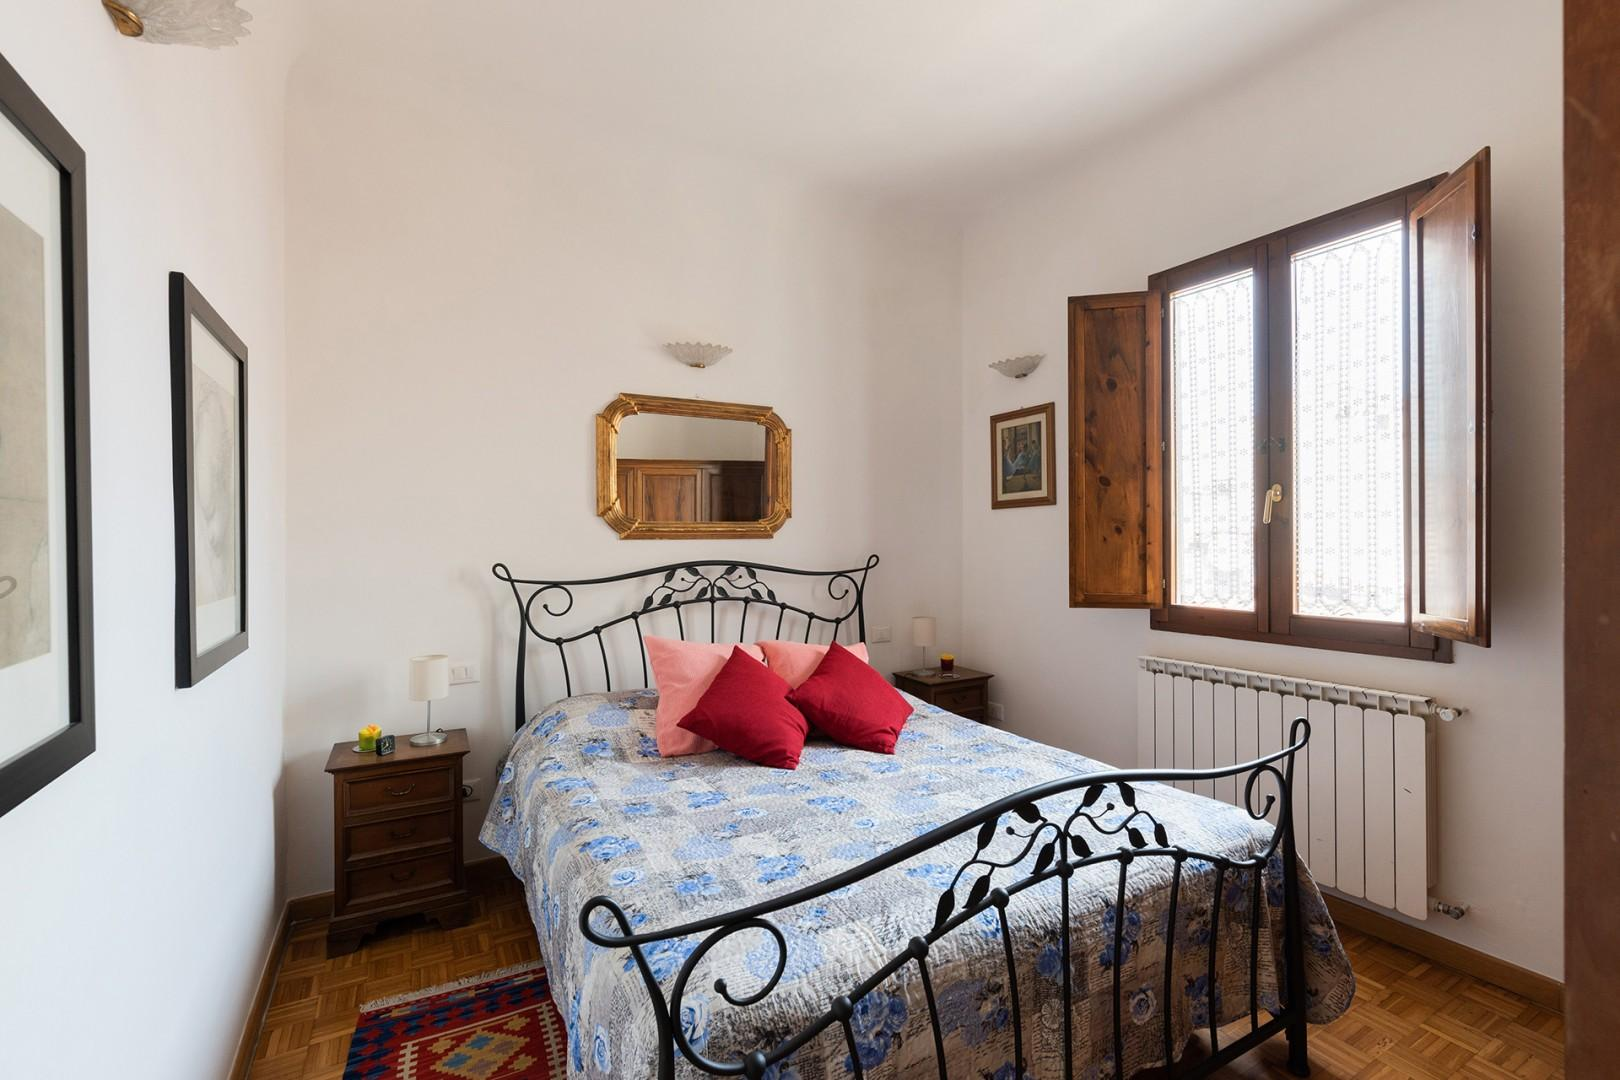 Comfortable bed, plenty of light from the large window.